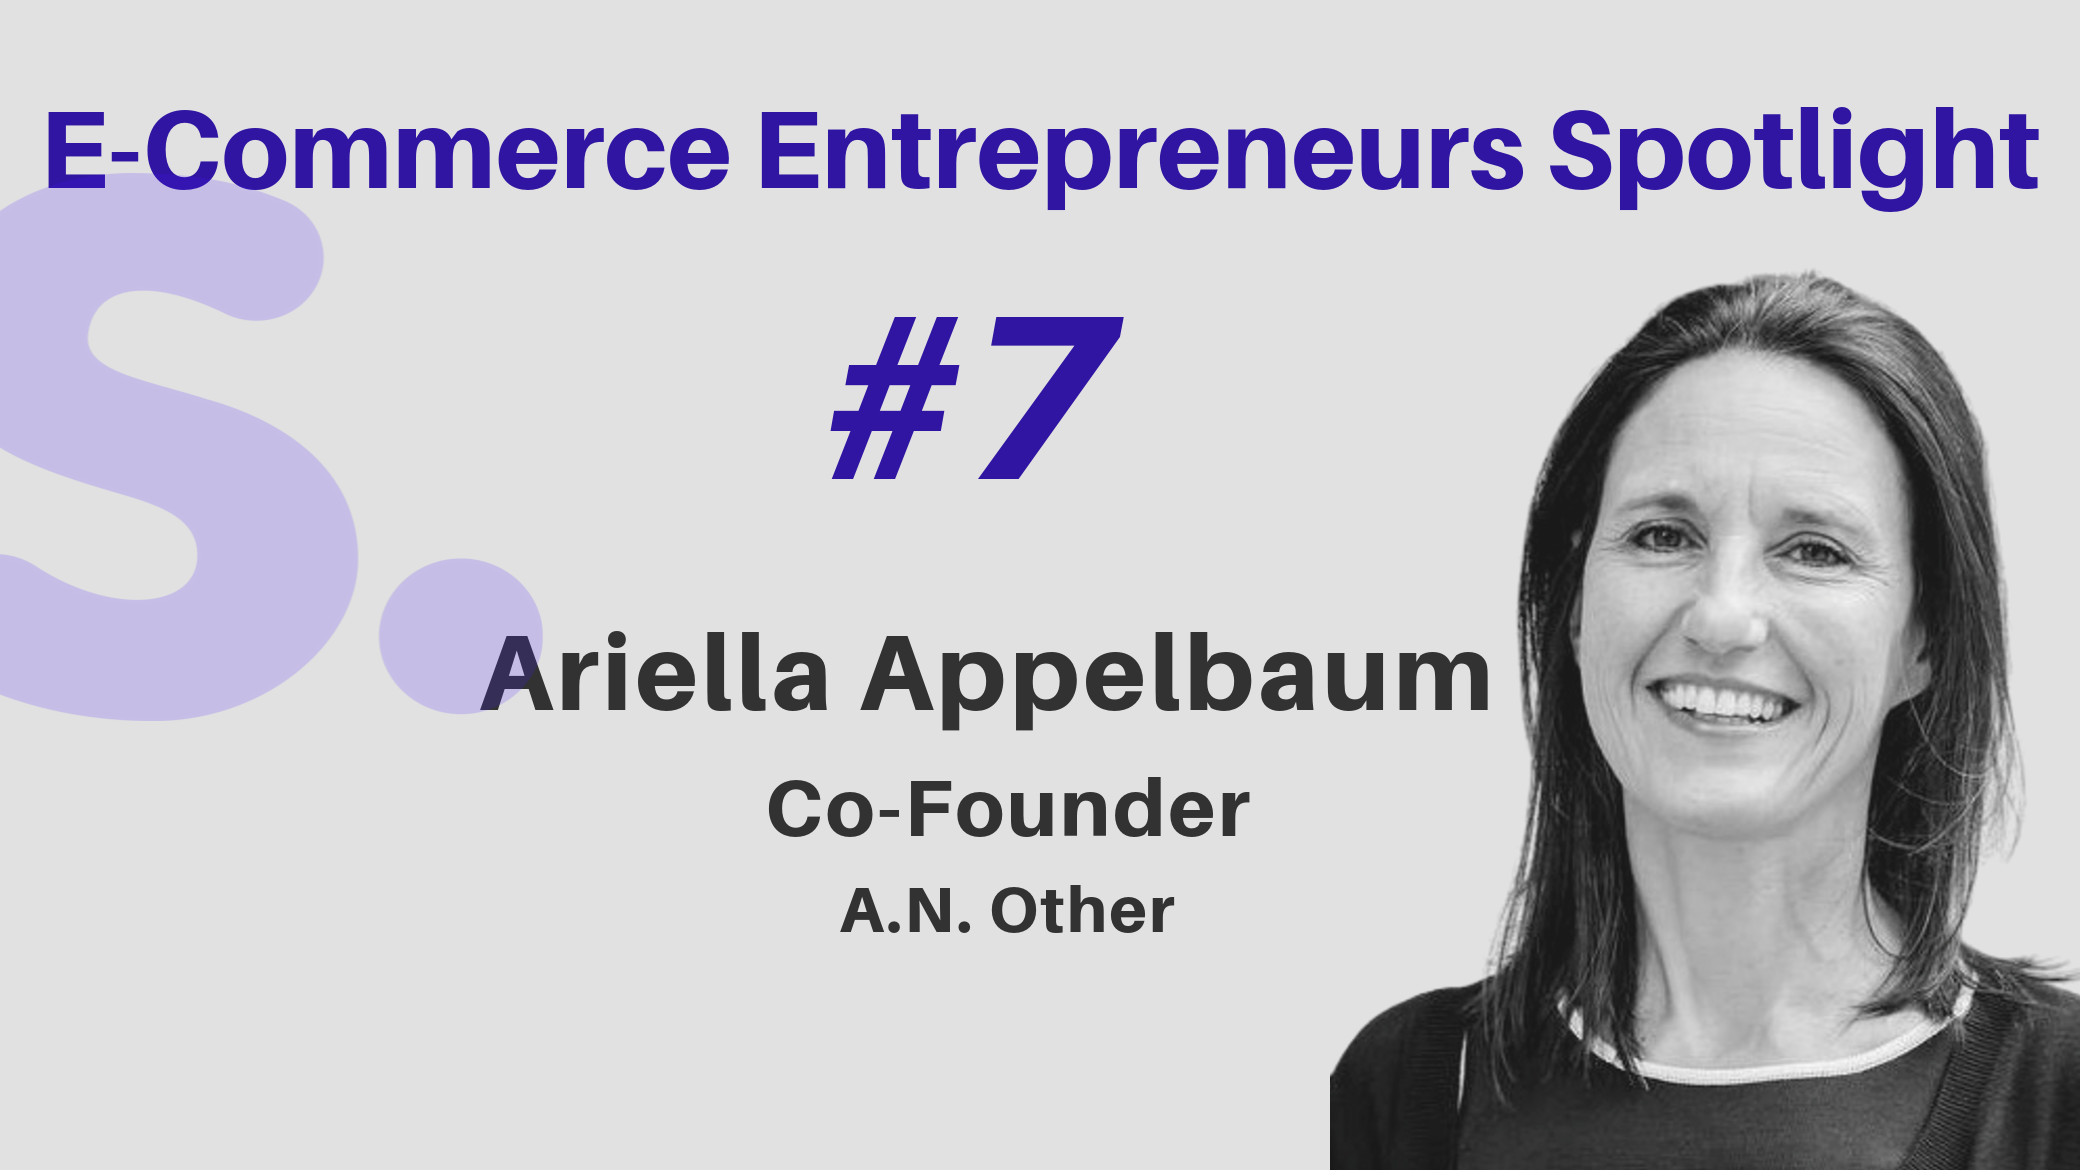 Shoppr E-Commerce Entrepreneurs Spotlight with Ariella Appelbaum, Co-Founder of A.N. Other